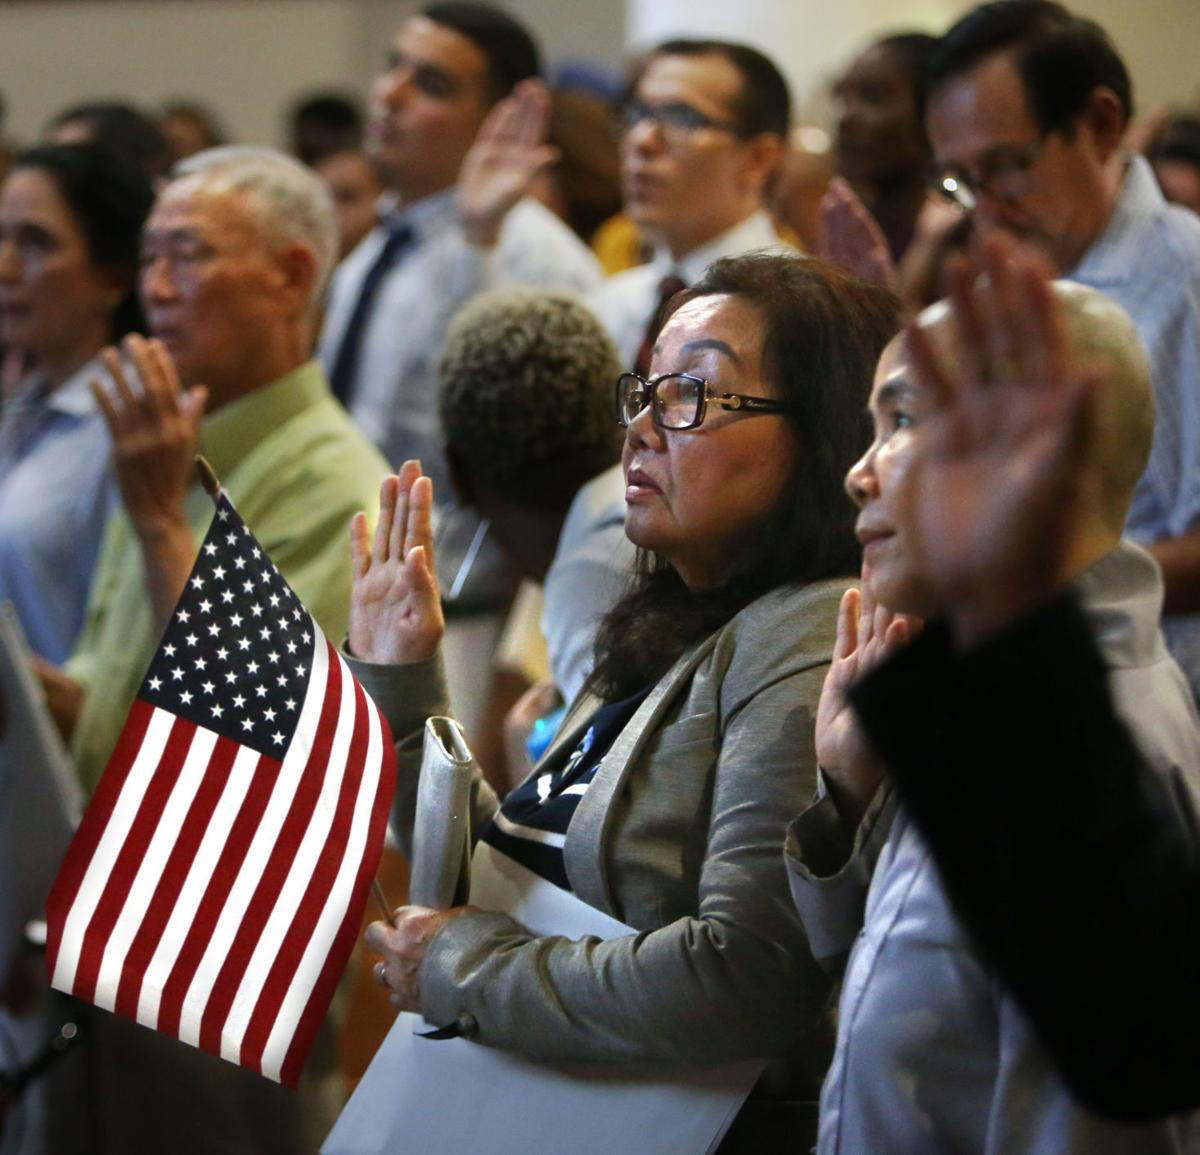 250 people become new citizens in CGMS auditorium